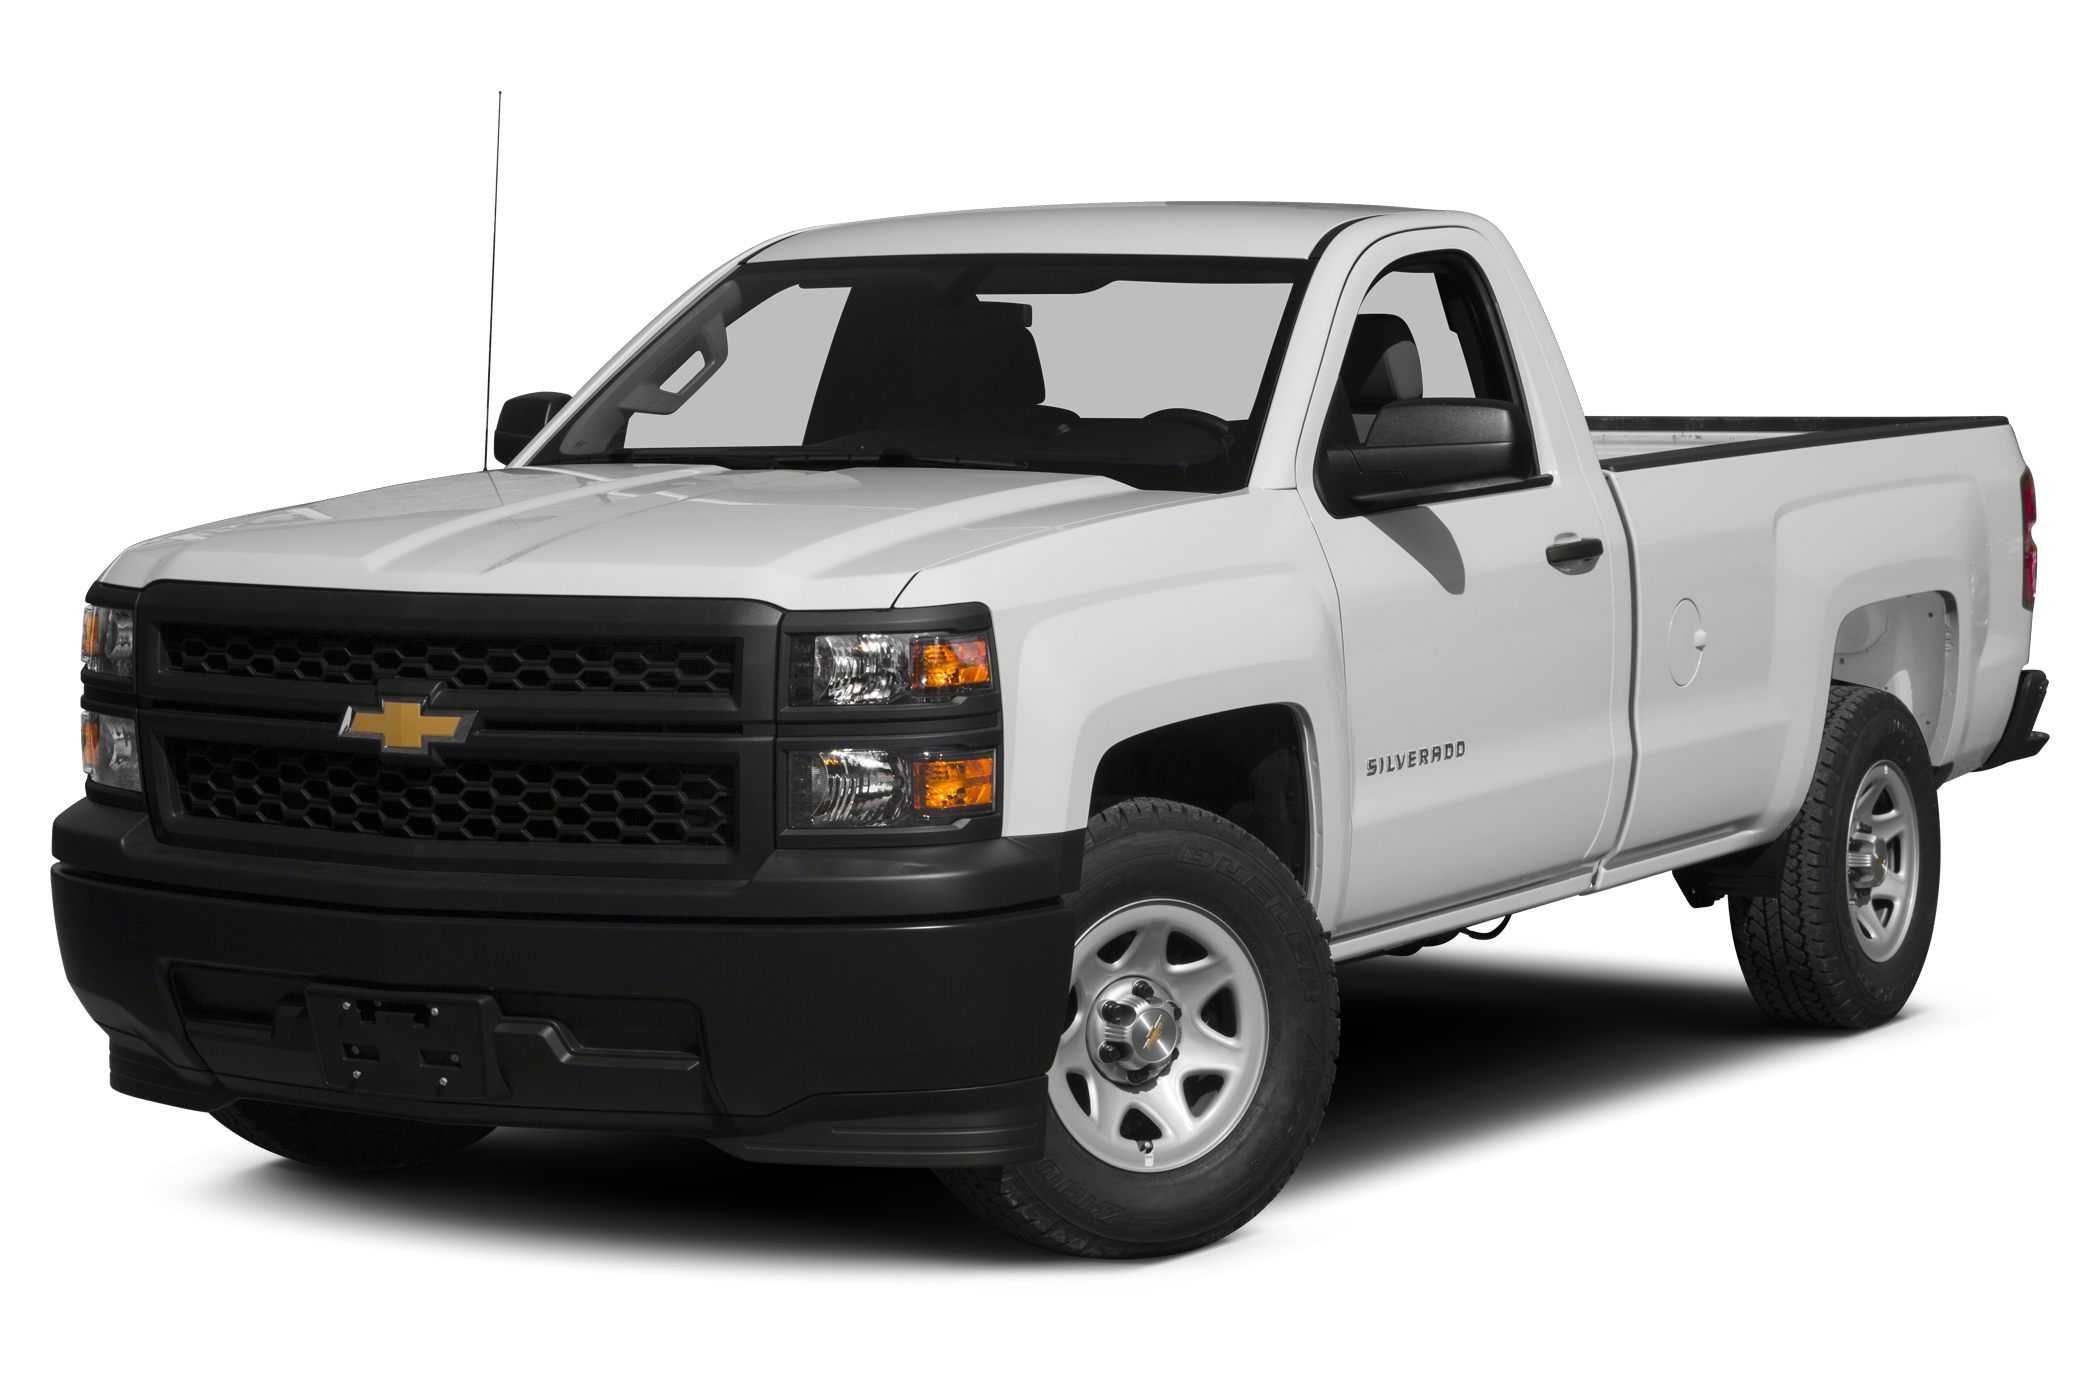 2015 Chevrolet Silverado 1500 1LT Crew Cab Pickup for sale in Dilley for $39,800 with 1 miles.